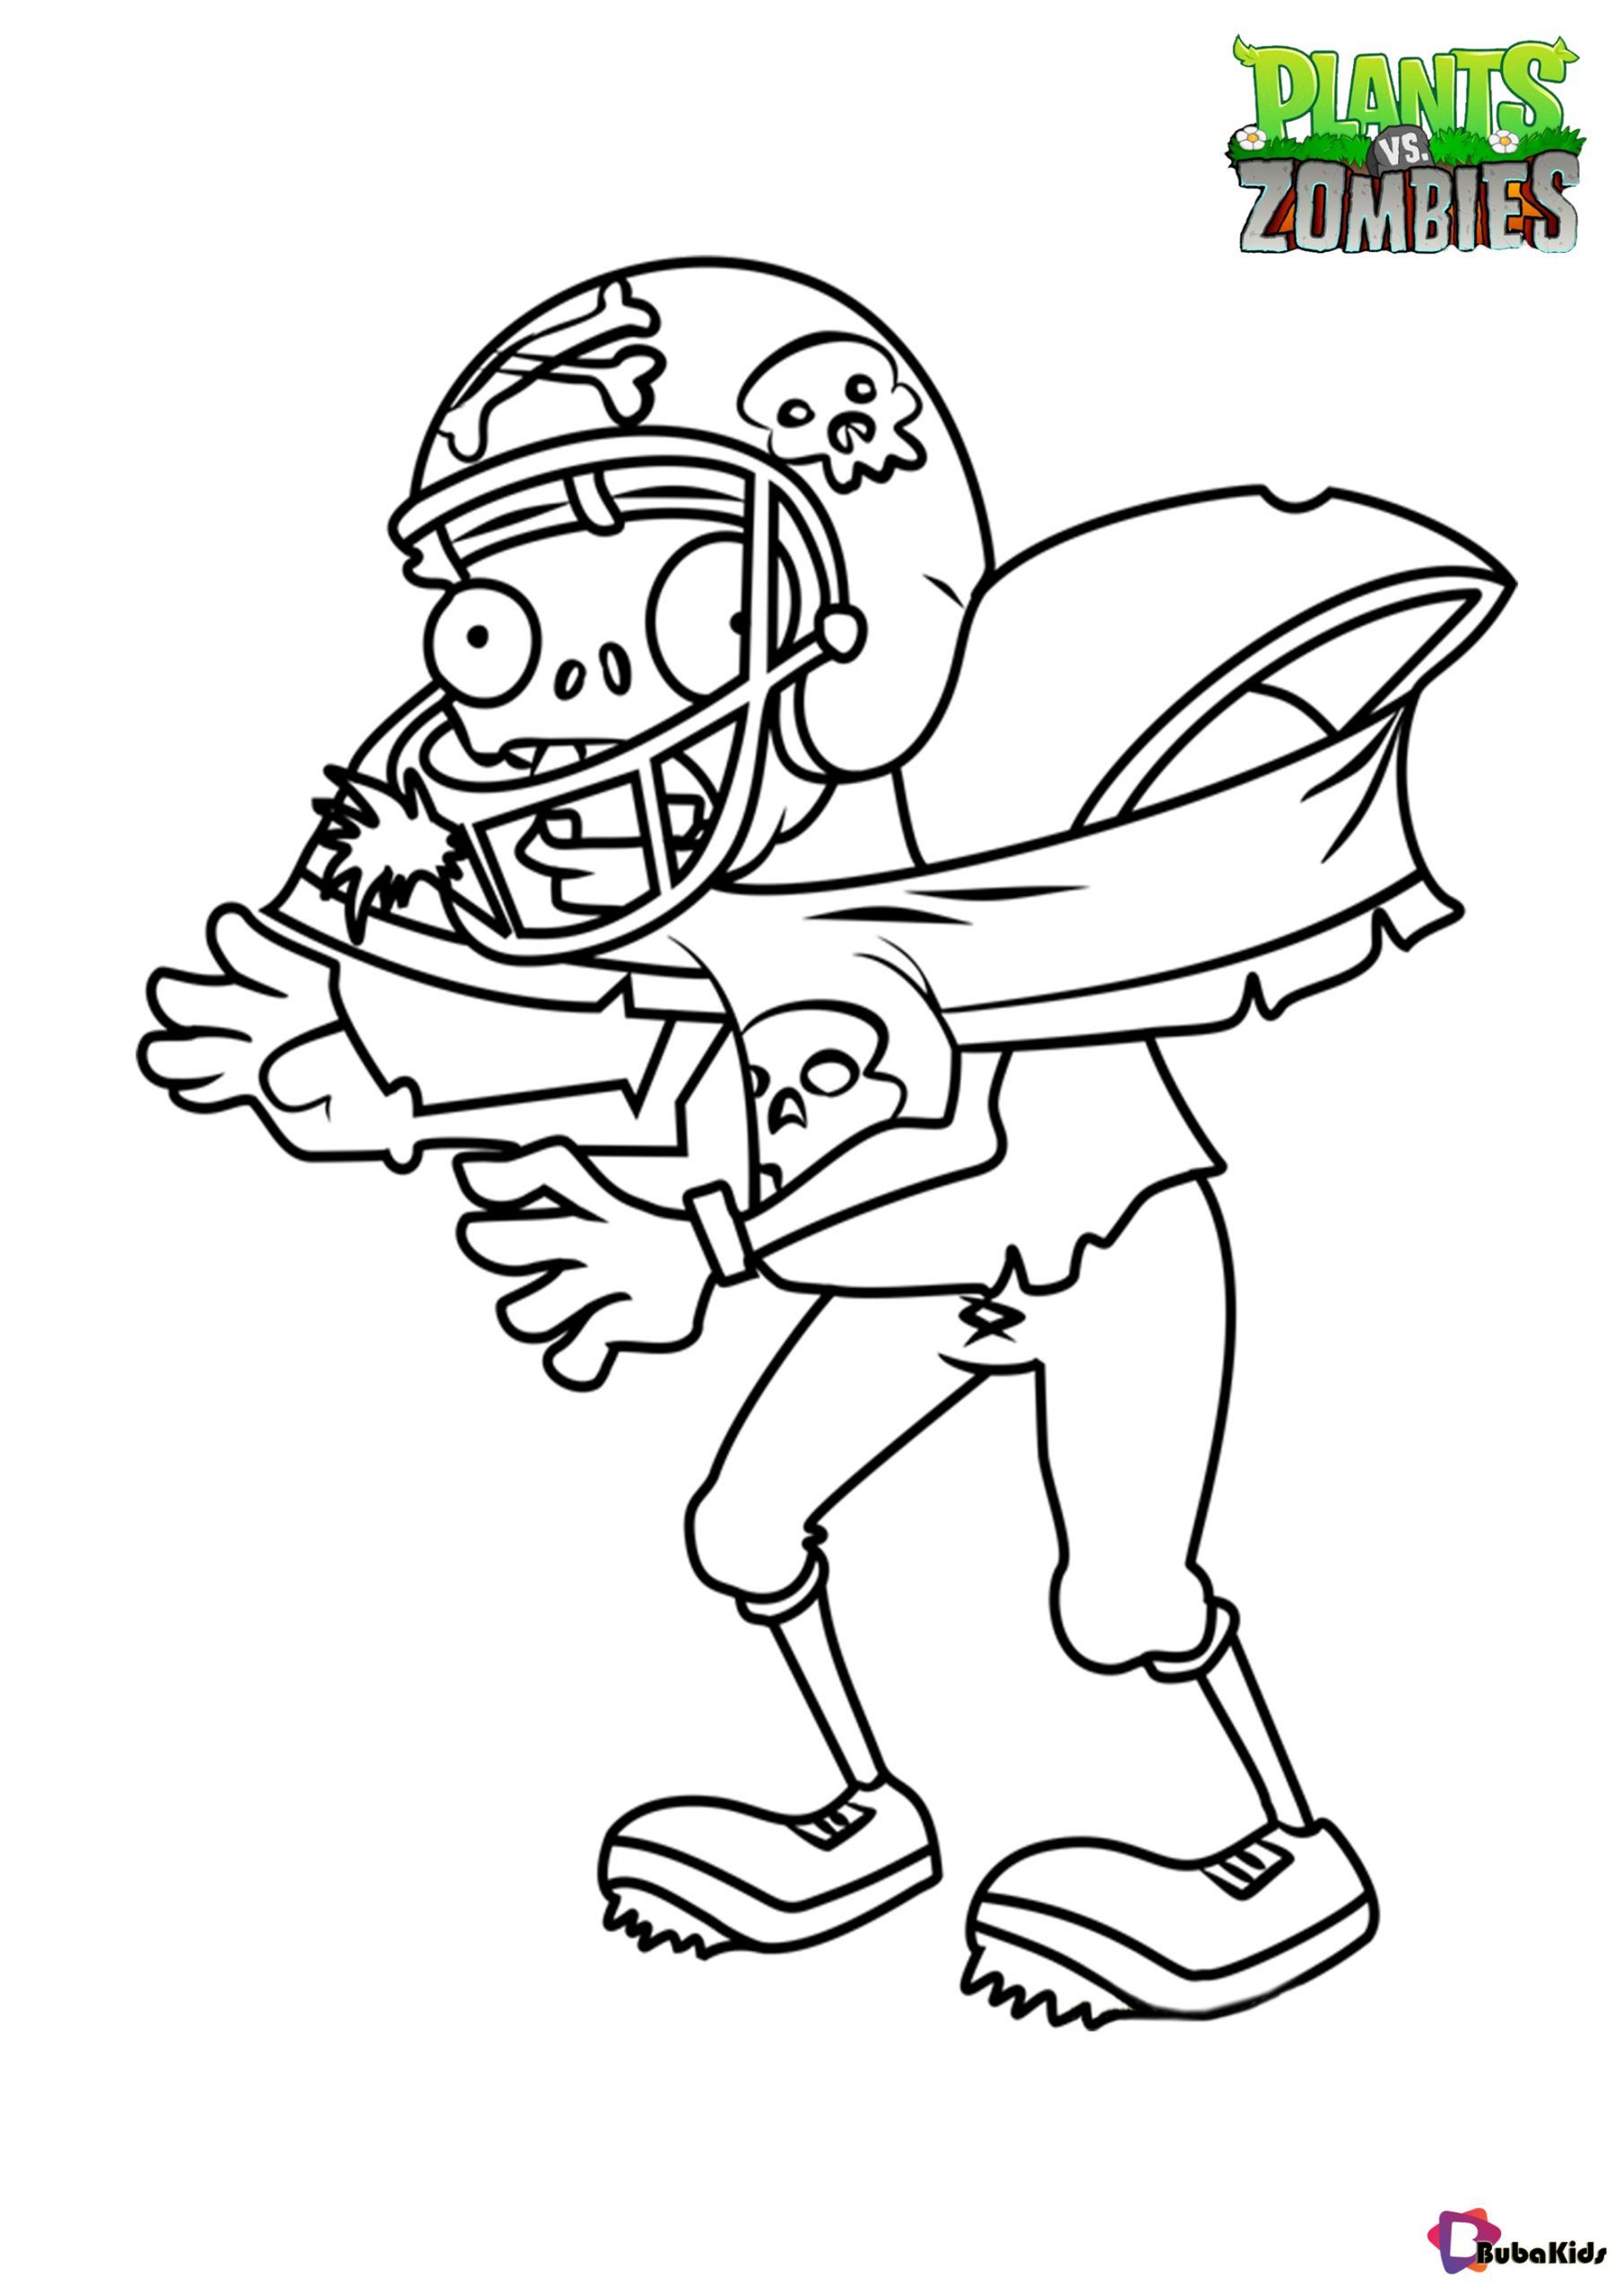 Plants Vs Zombies Football Zombie Coloring Page Collection Of Cartoon Coloring Pages For Teenage Print Cartoon Coloring Pages Coloring Pages Plants Vs Zombies [ 2560 x 1810 Pixel ]